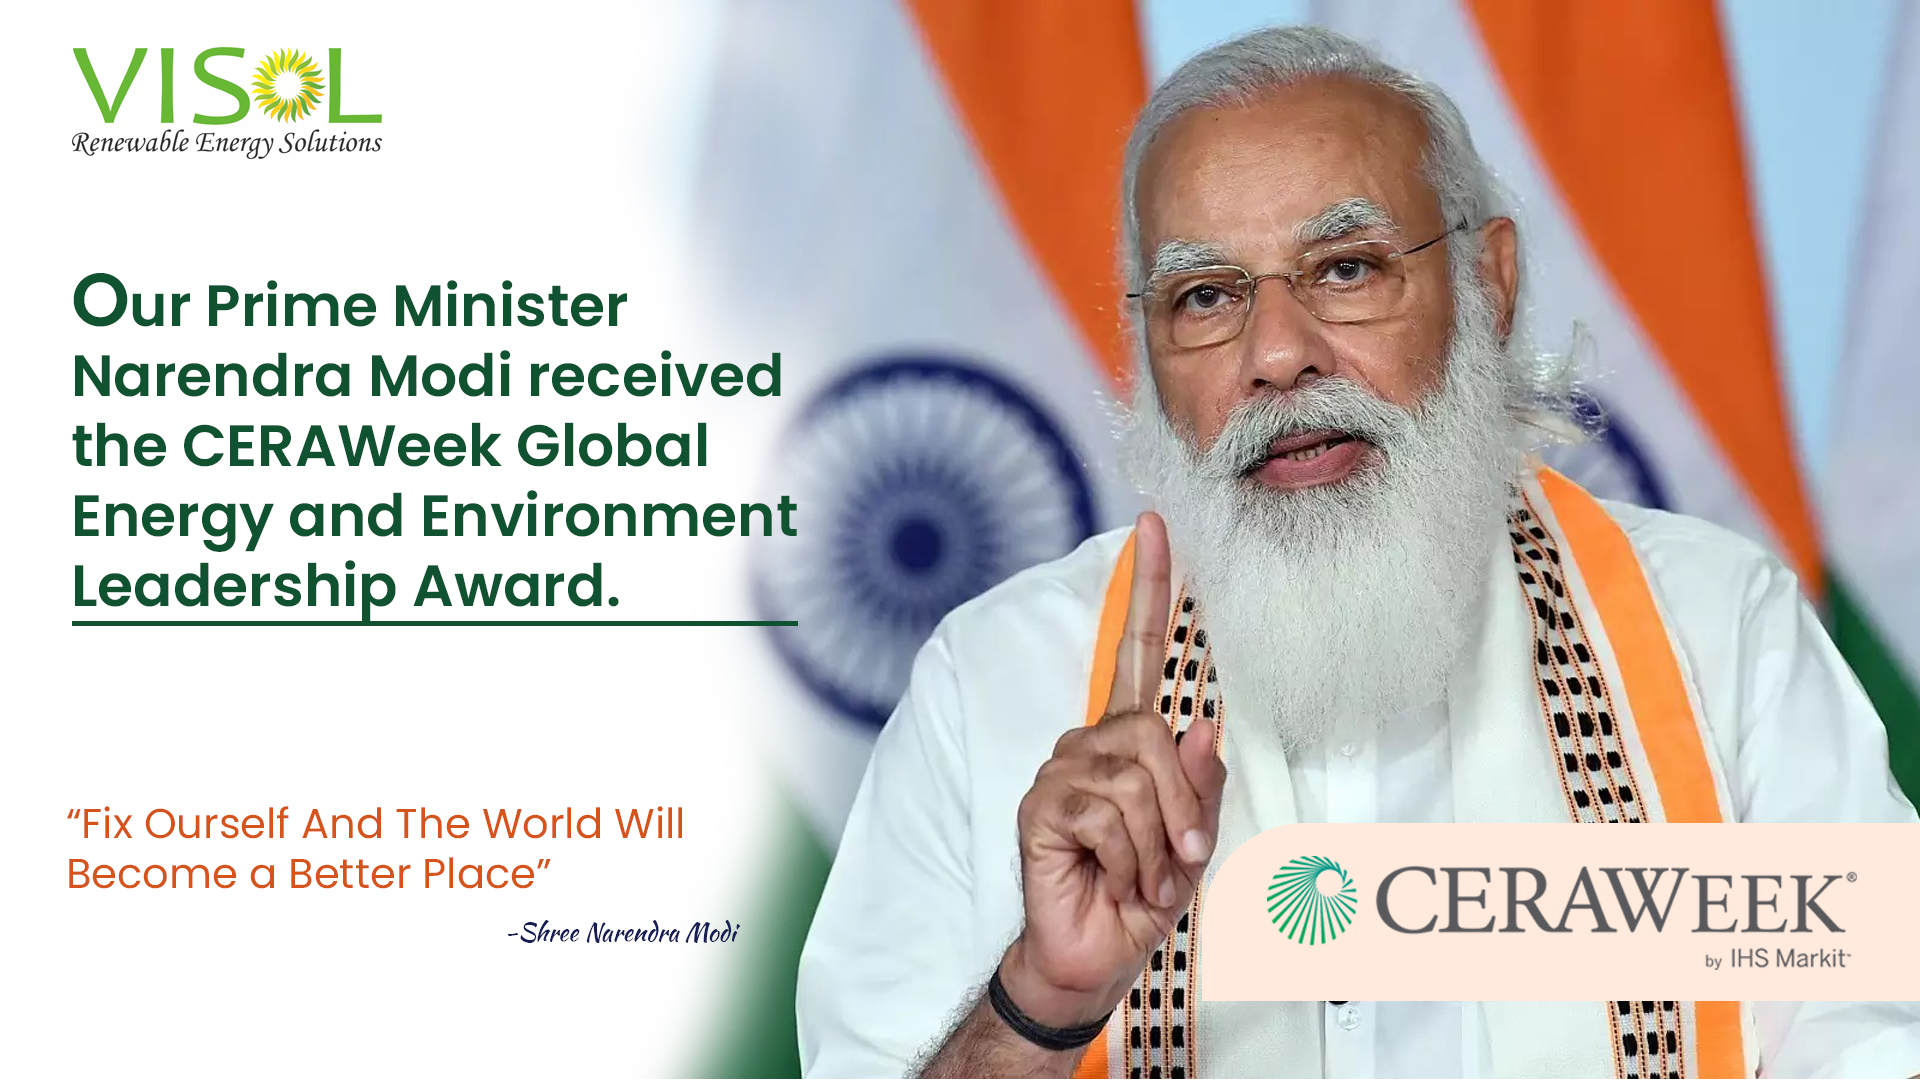 Indian PM Received Global Energy and Environment Leadership Award by CERAWeek